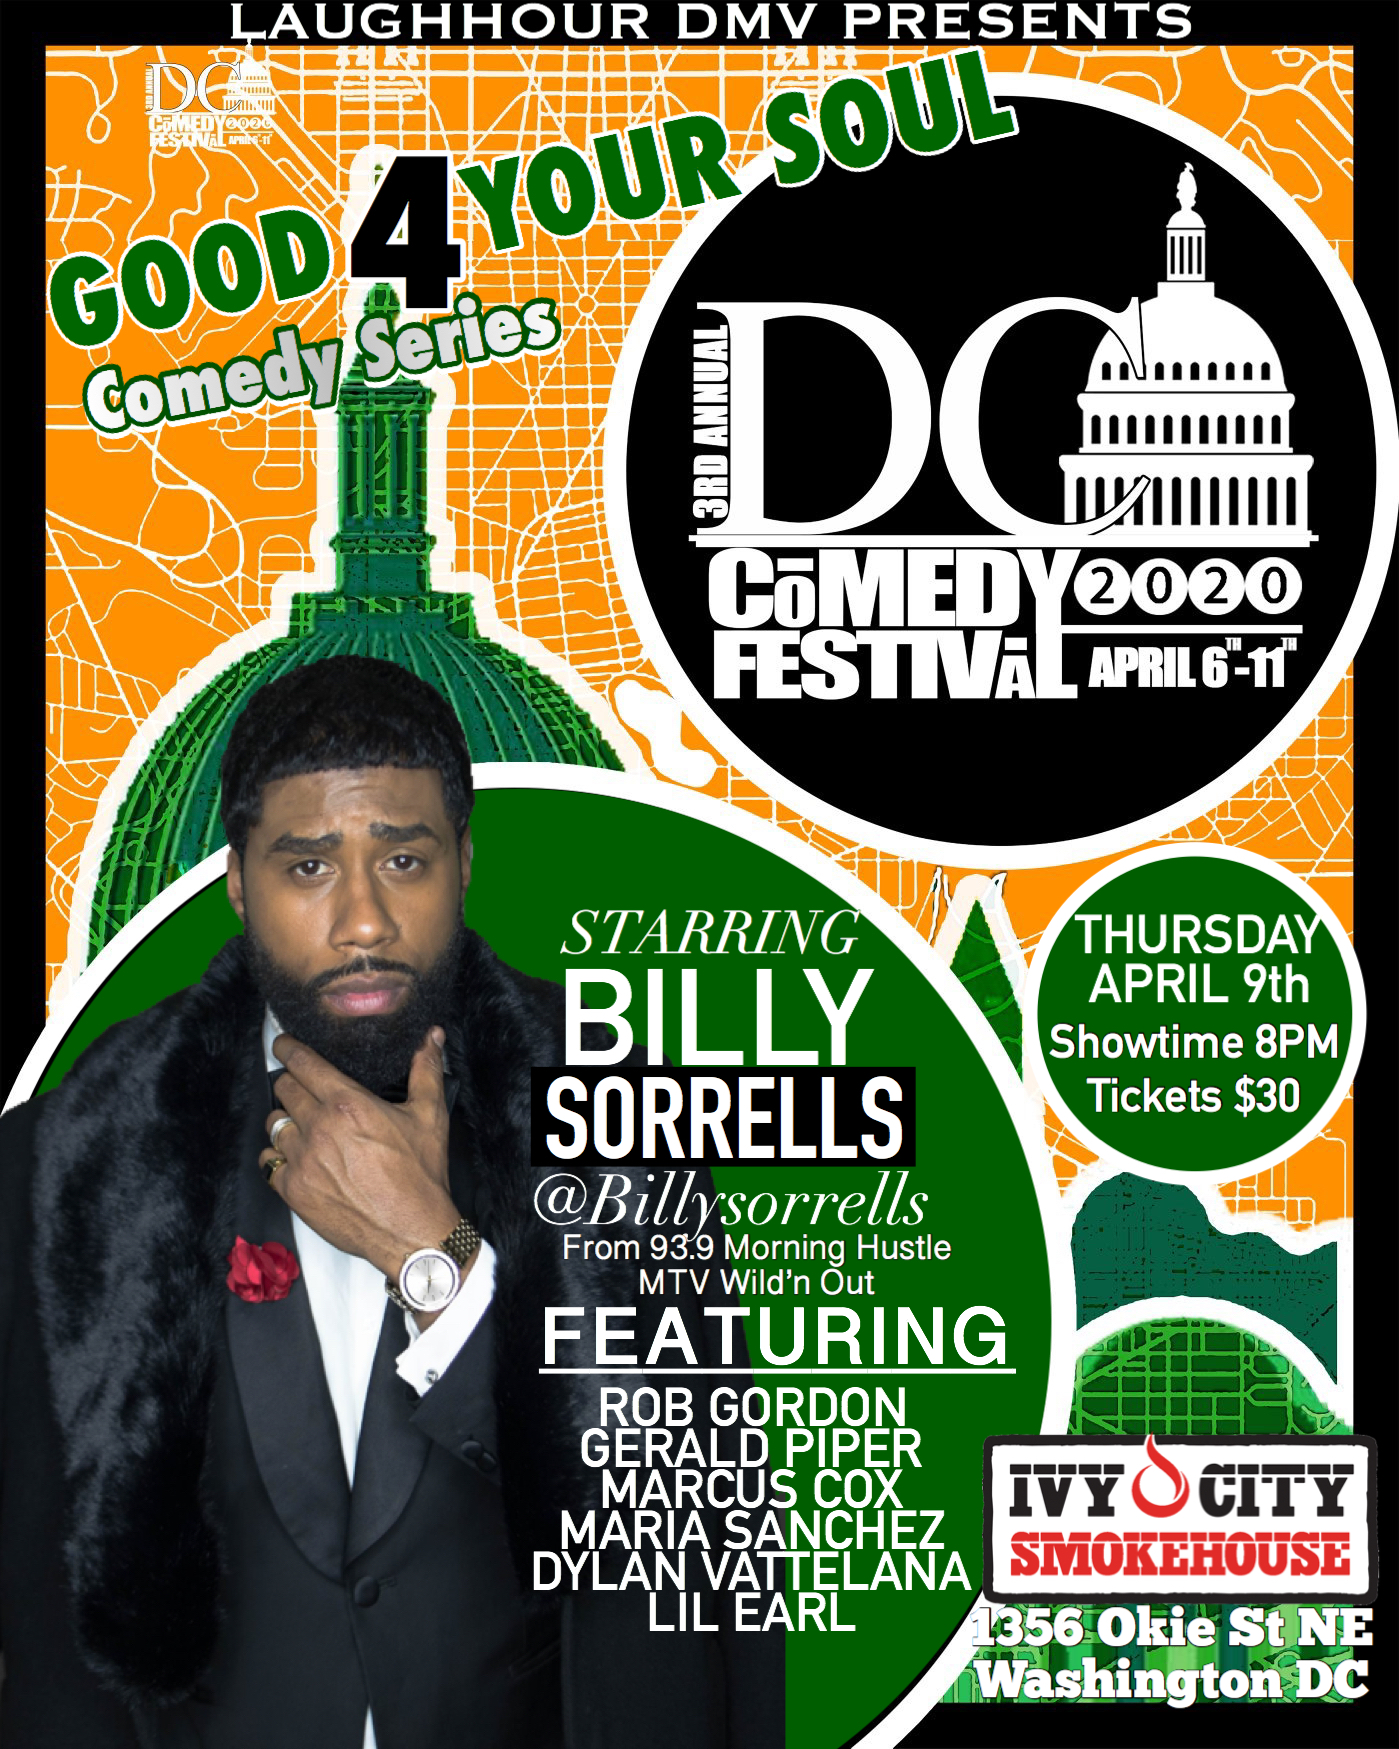 GOOD 4 THE SOUL COMEDY SERIES @DC COMEDY FESTIVAL